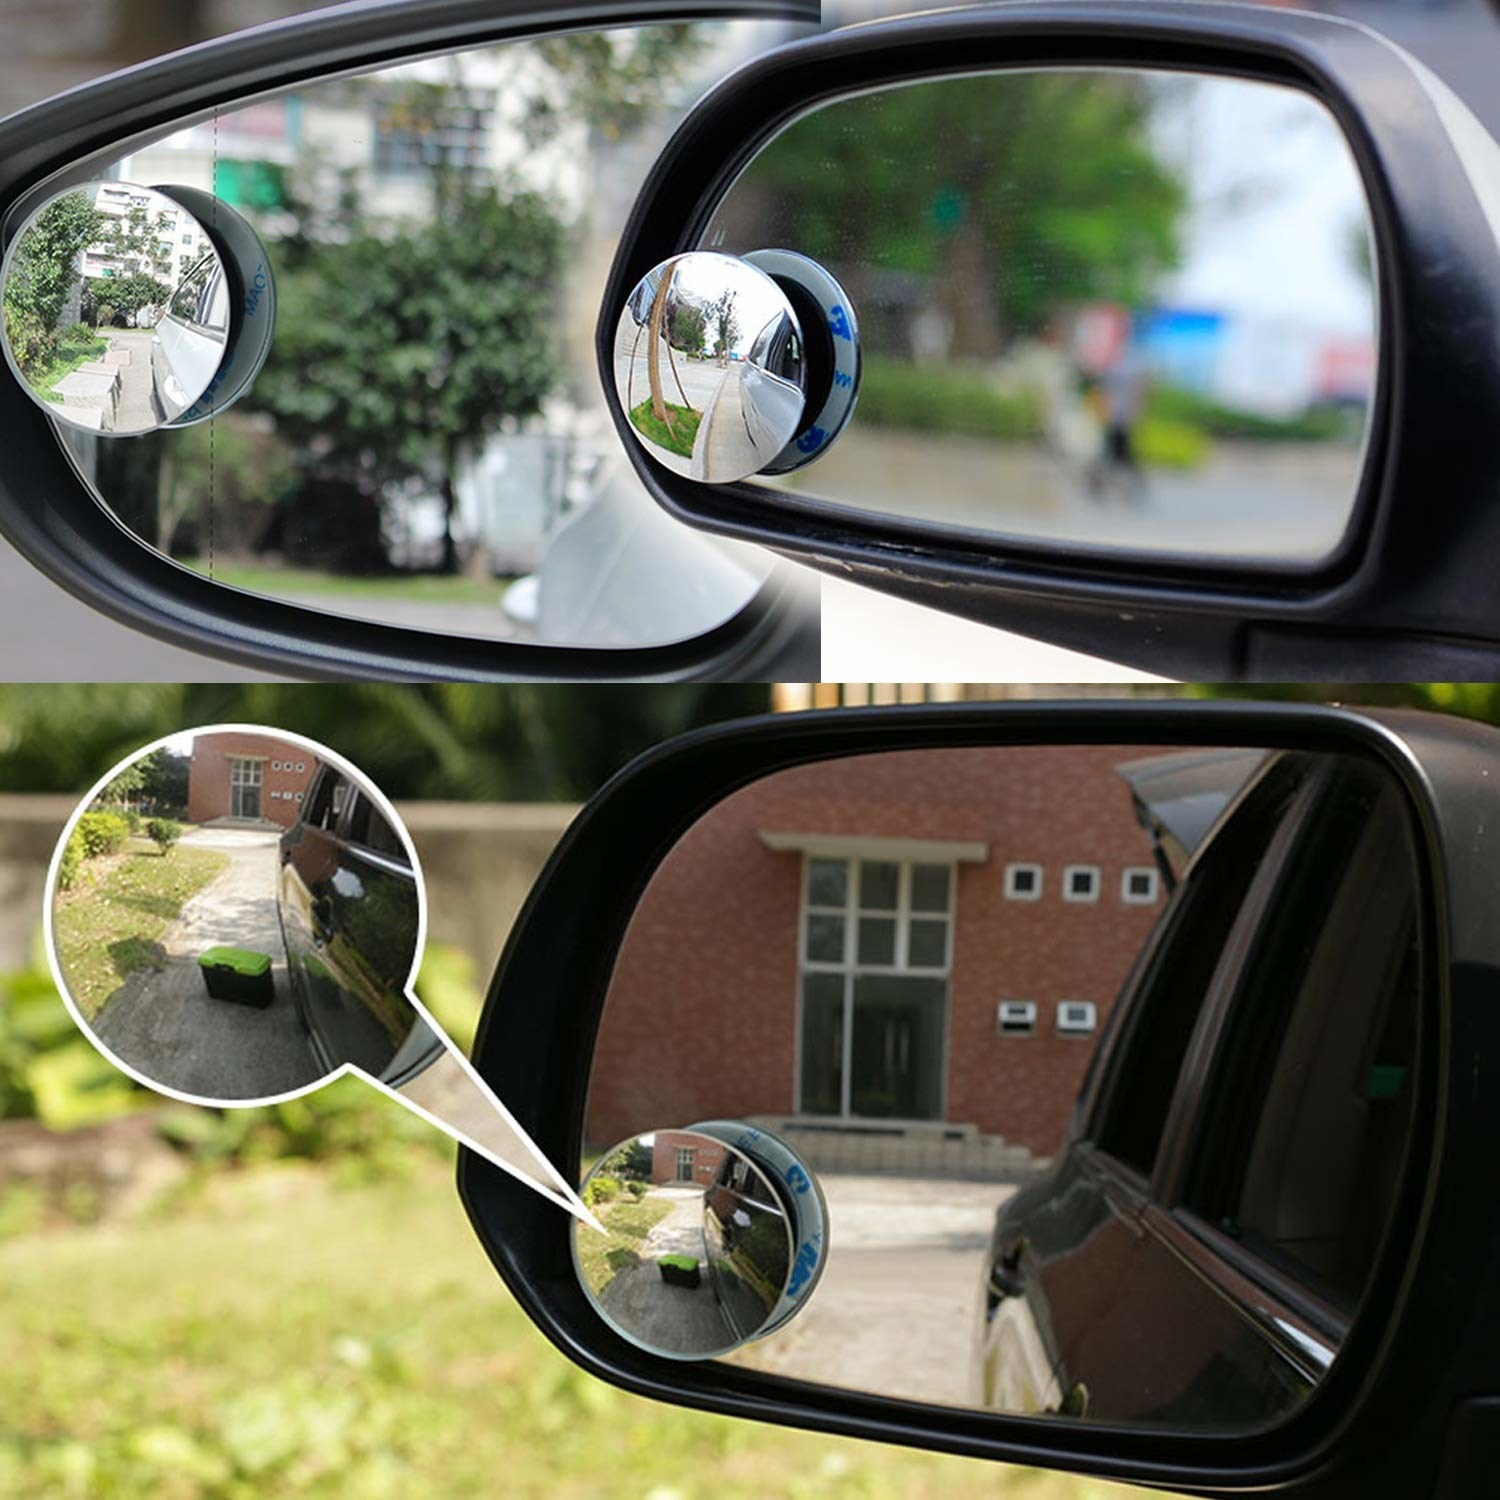 The round mirror on a side mirror to show how they work